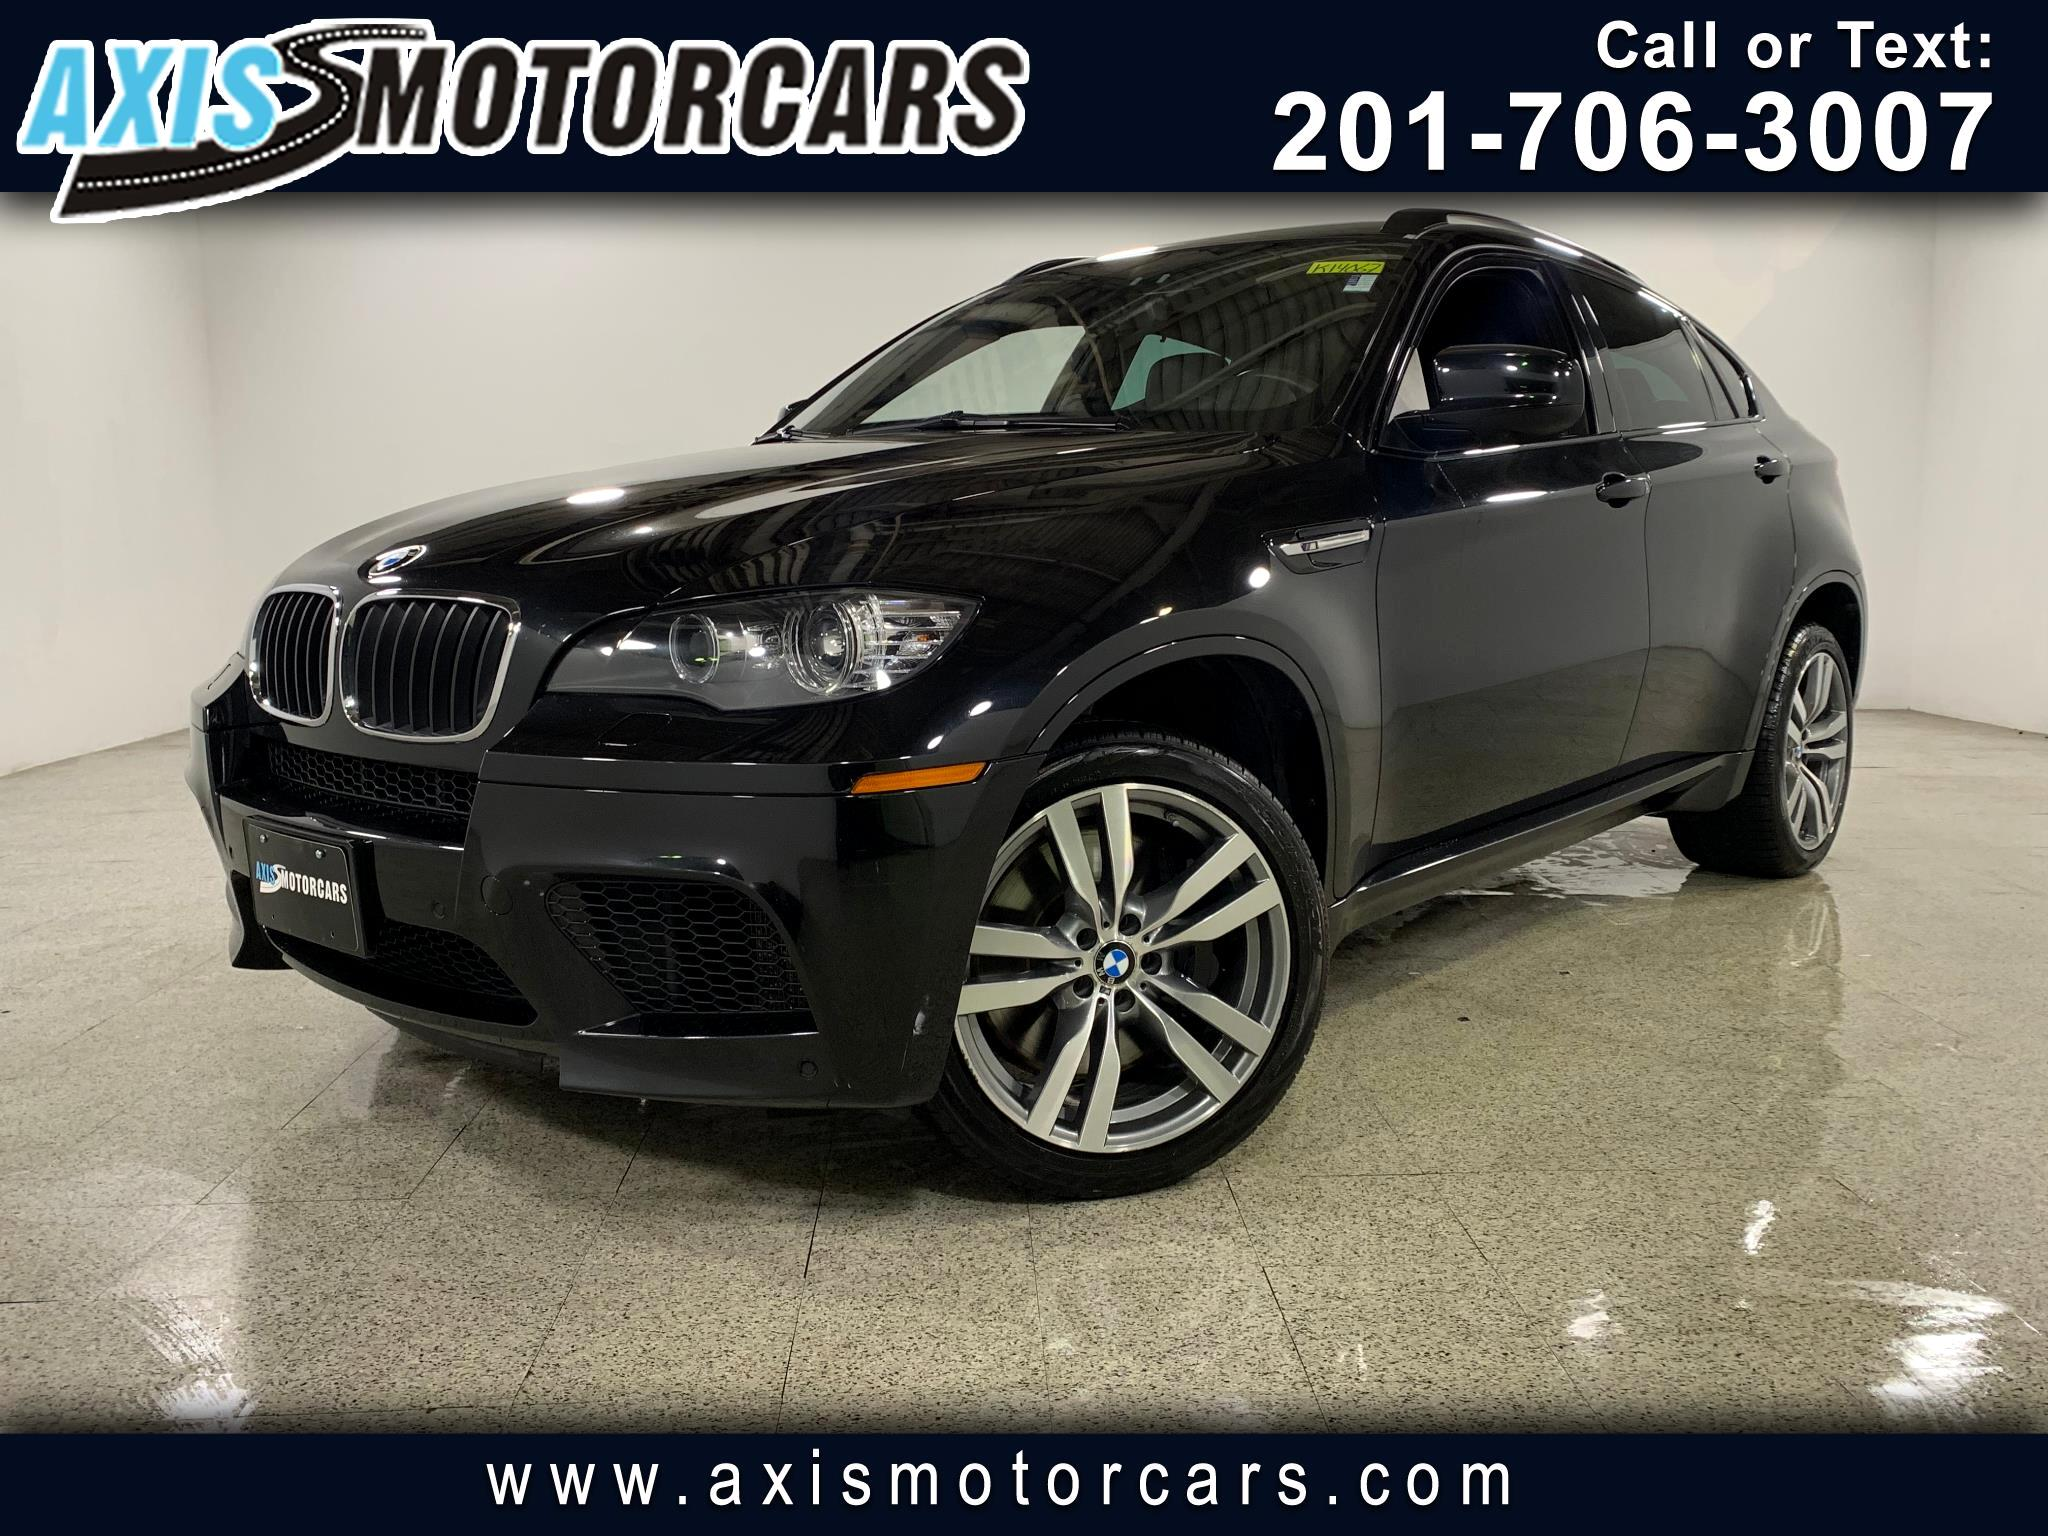 2011 BMW X6 M Pkg w/Navigation Backup Camera Sunroof